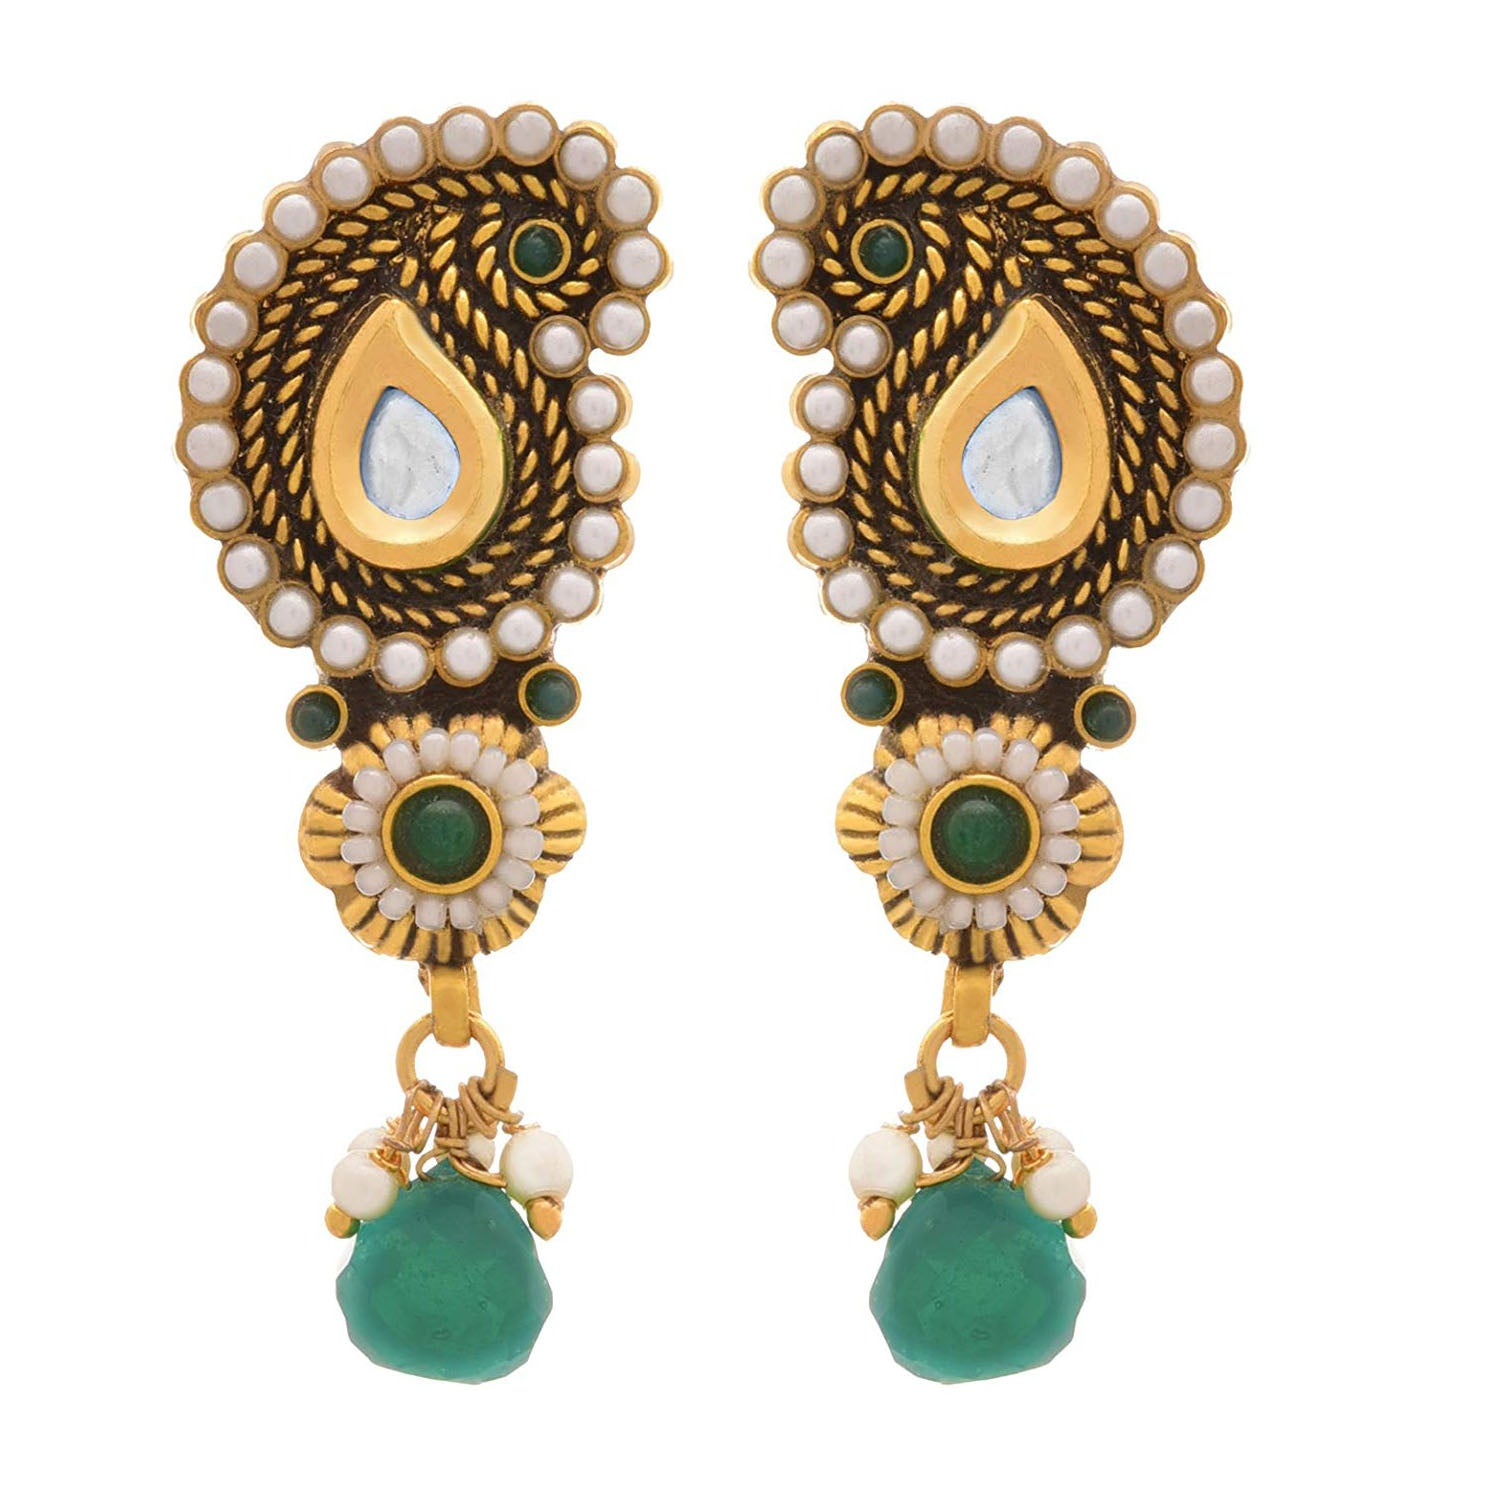 JFL - Traditional & Ethnic One Gram Gold Plated Designer Earring with Stone & Pearls for Women & Girls